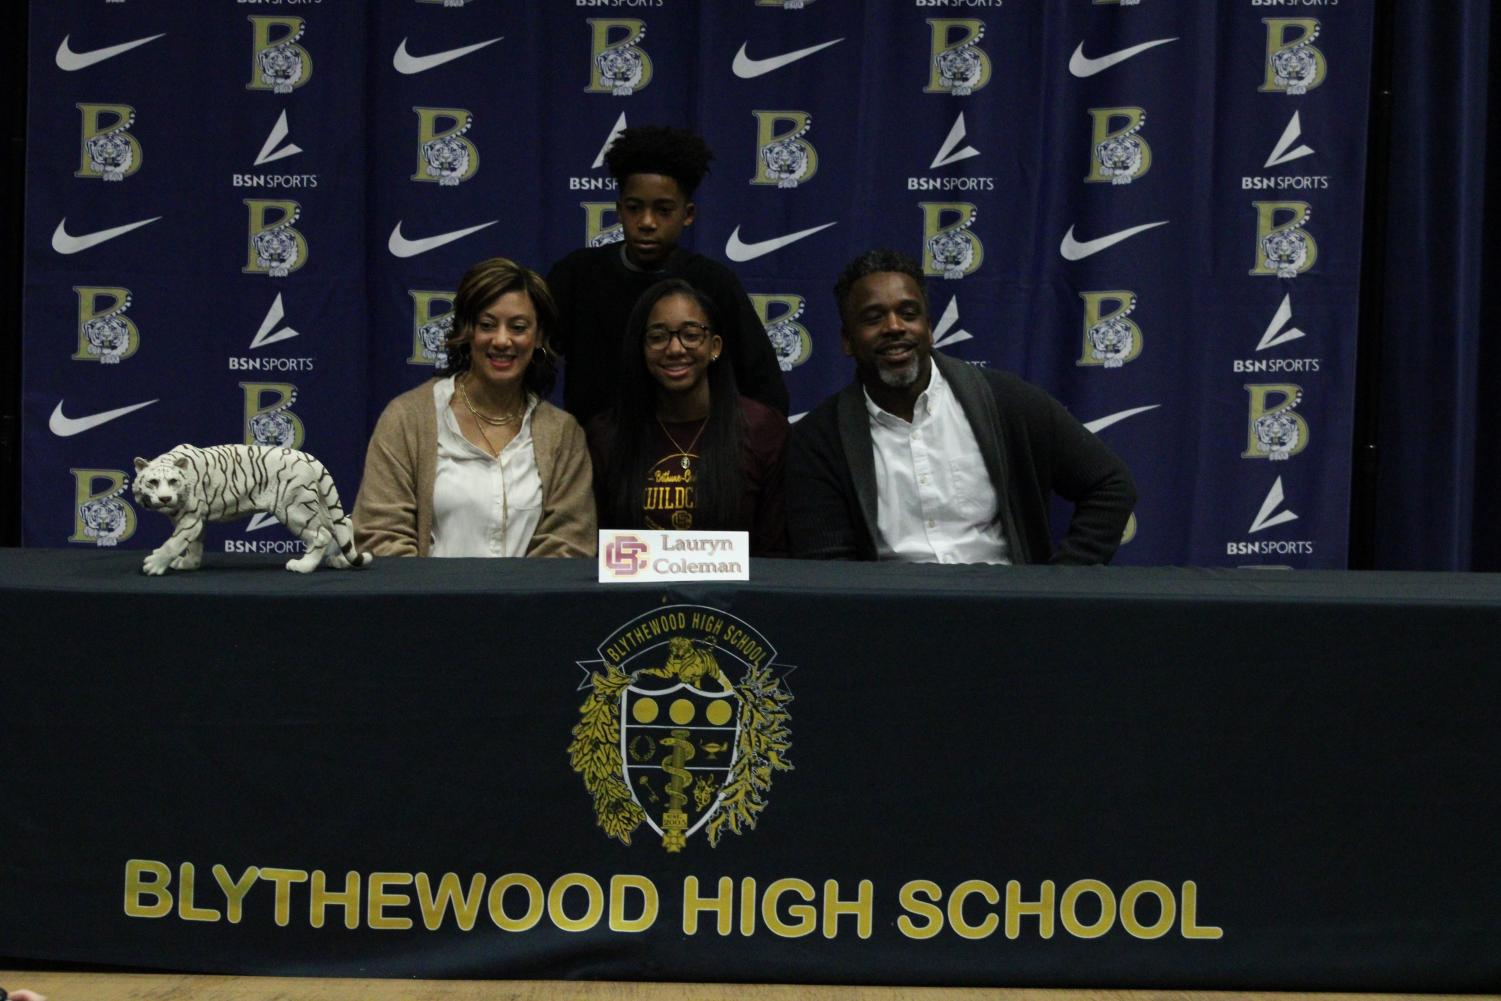 Lauren+Coleman+signs+to+play+volleyball+at+Bethune-Cookman+University.